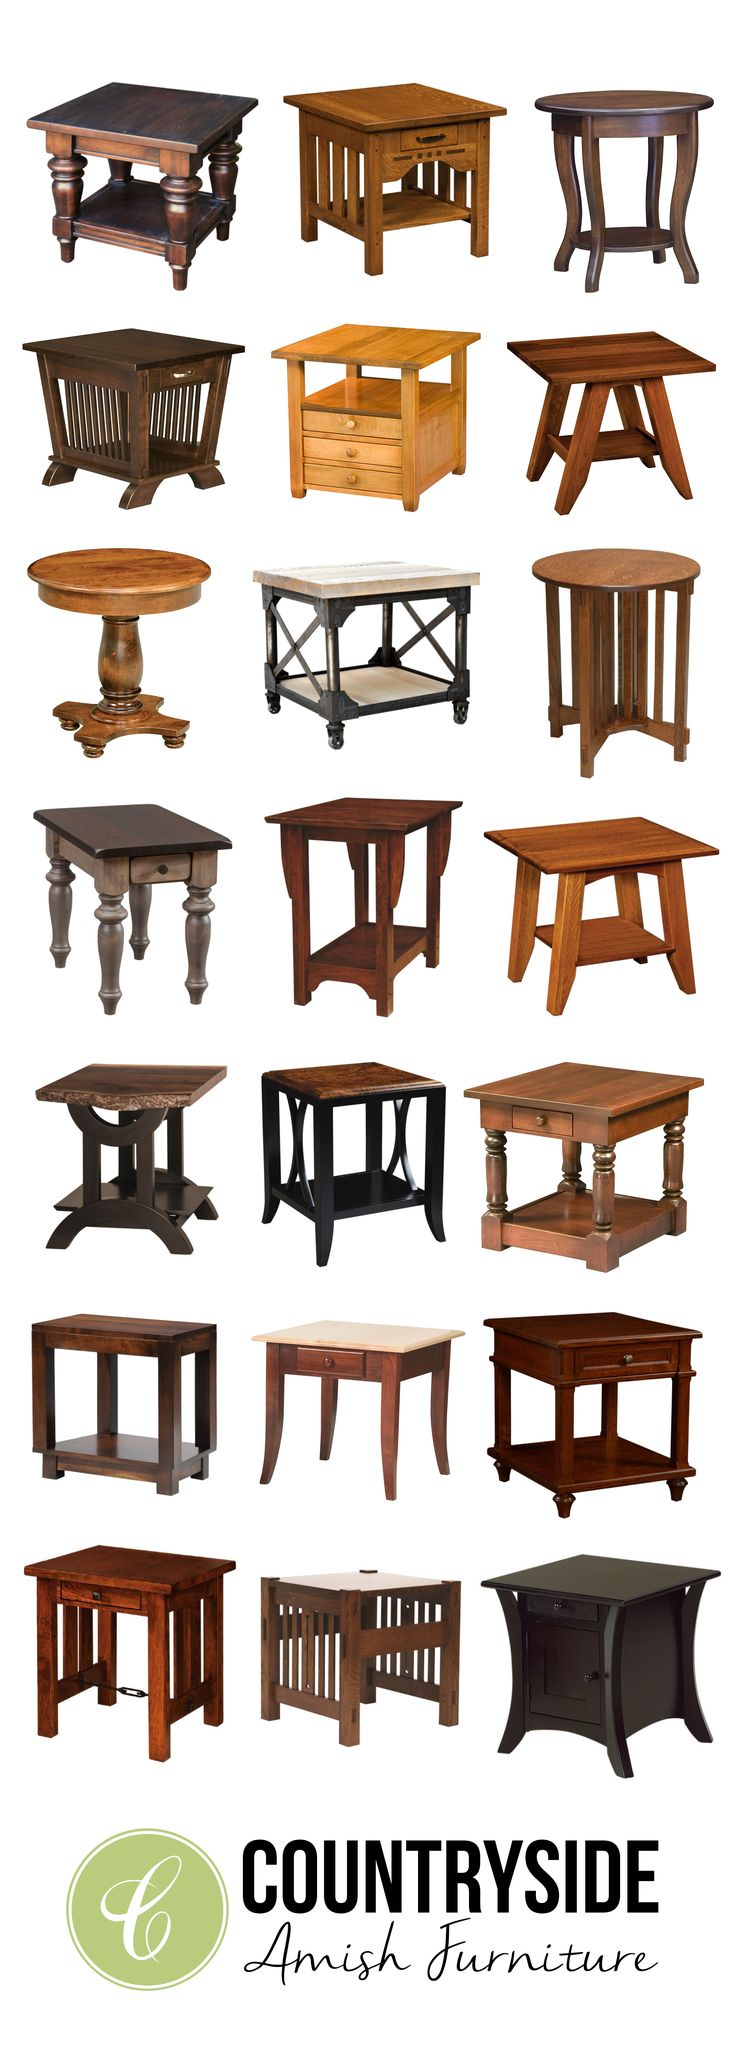 Traditional, Contemporary, or Craftsman, we have a solid wood end table for every home | Countryside Amish Furniture